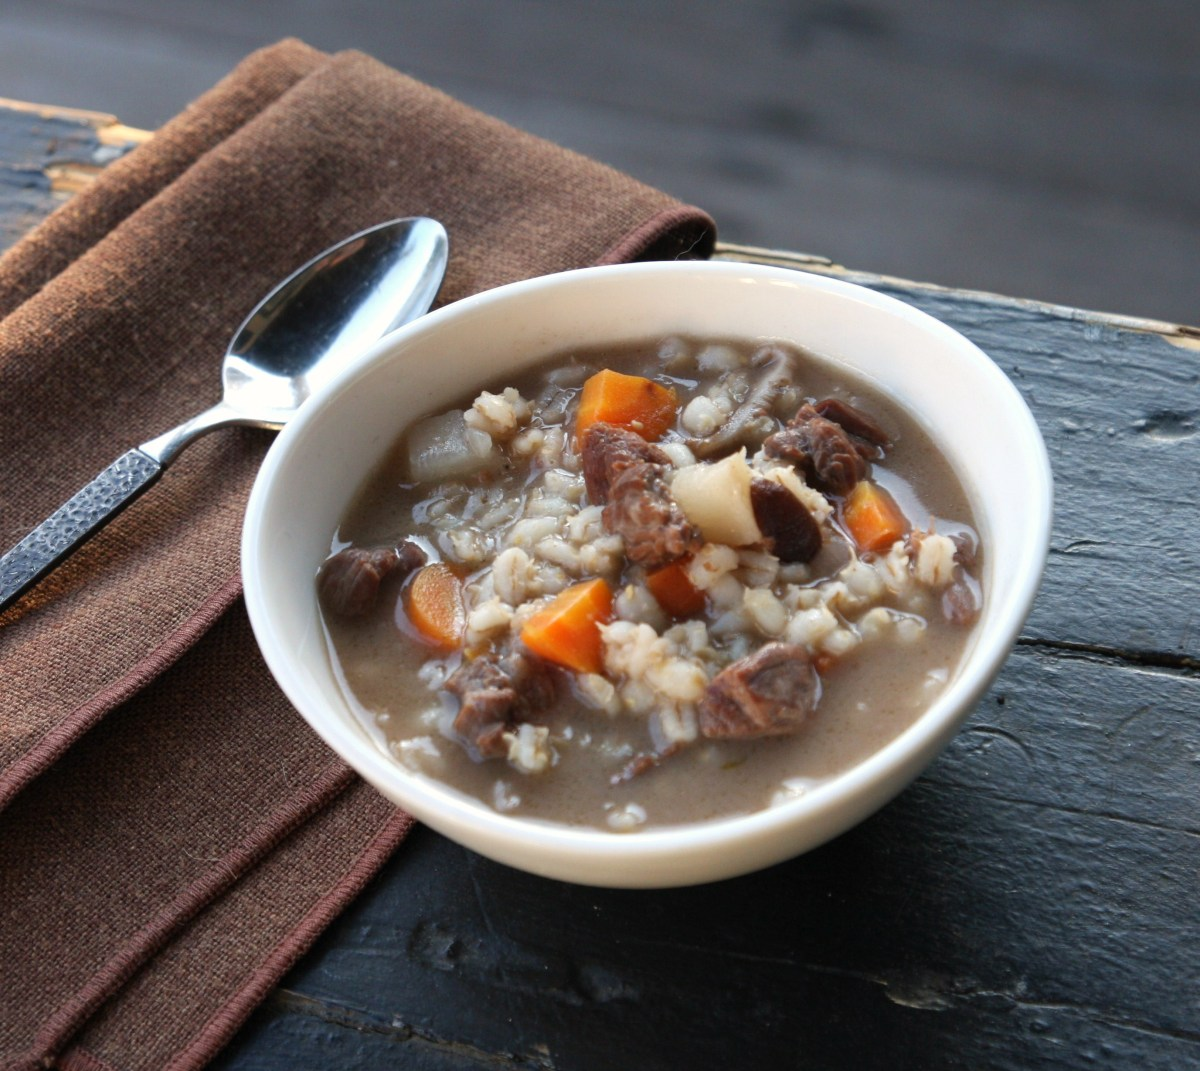 Beef and Barley Stew recipe from Game of Thrones